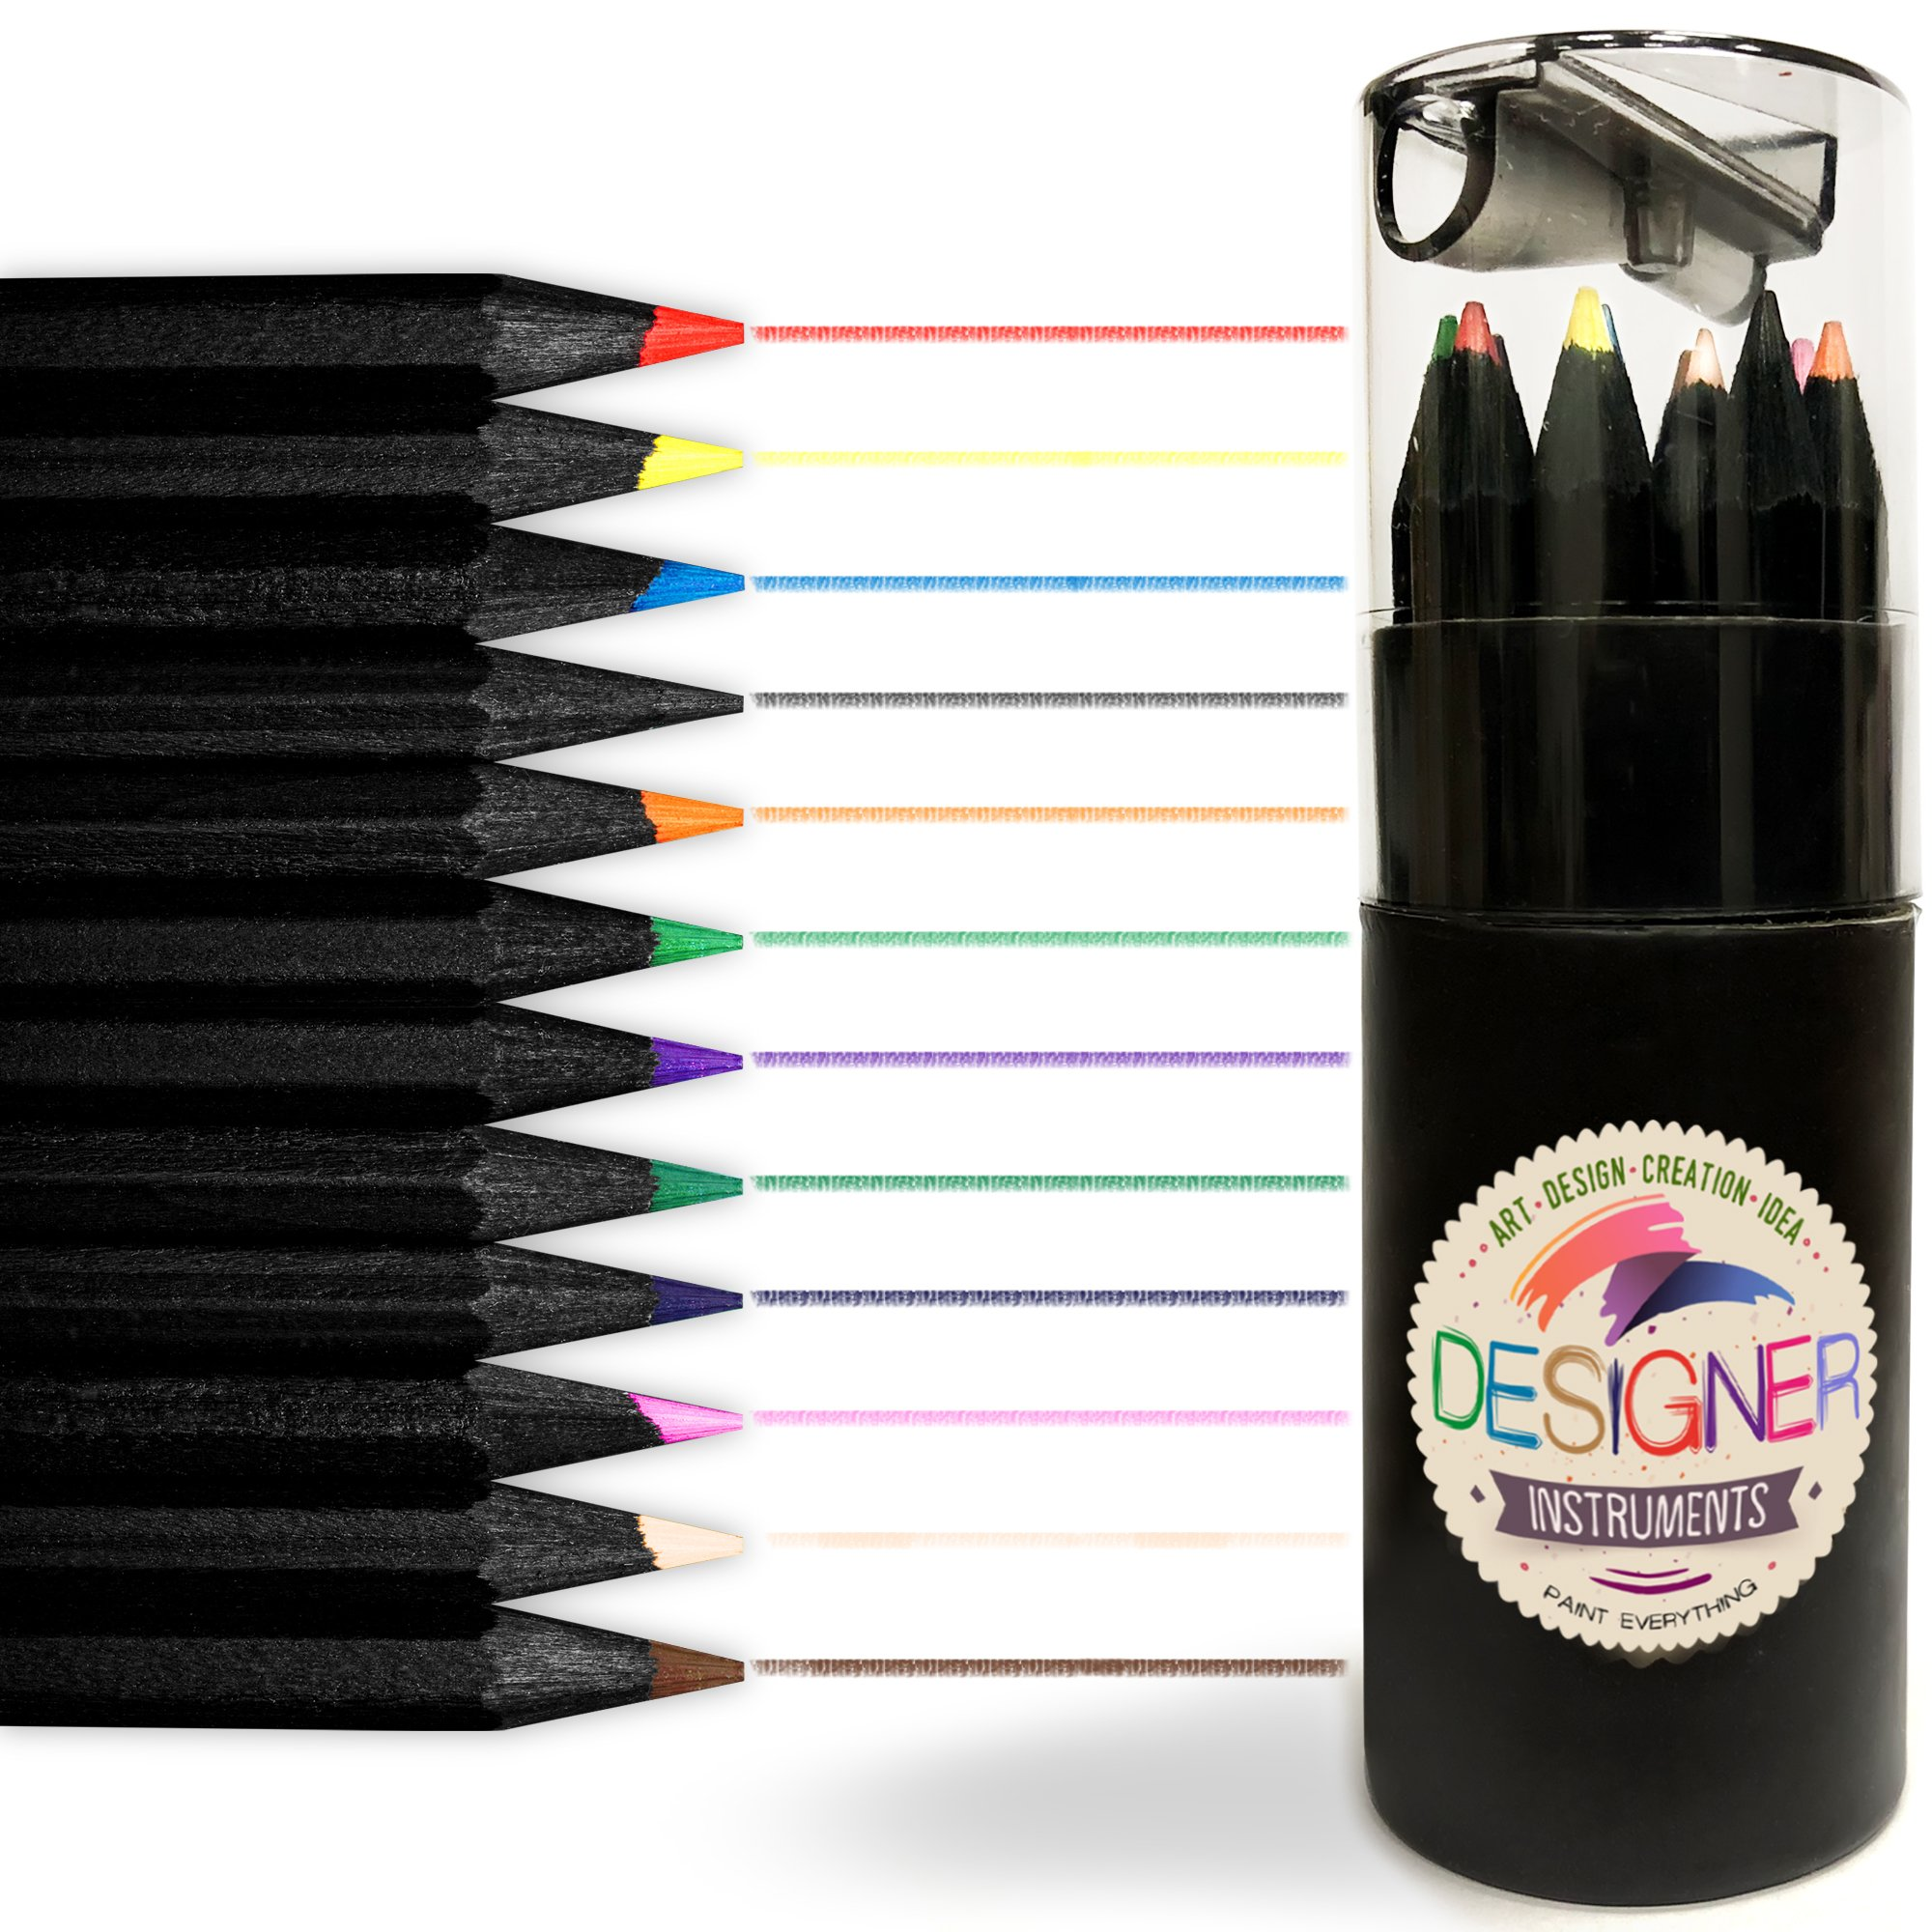 Colored Pencils - Drawing Pencils - Art Pencils - Coloring Pencils - Colored Pencil Set – Multi Erasable Bright Small Colored Pencils For Kids Girls Boys – Colored Pencil Box With Pencil Sharpener